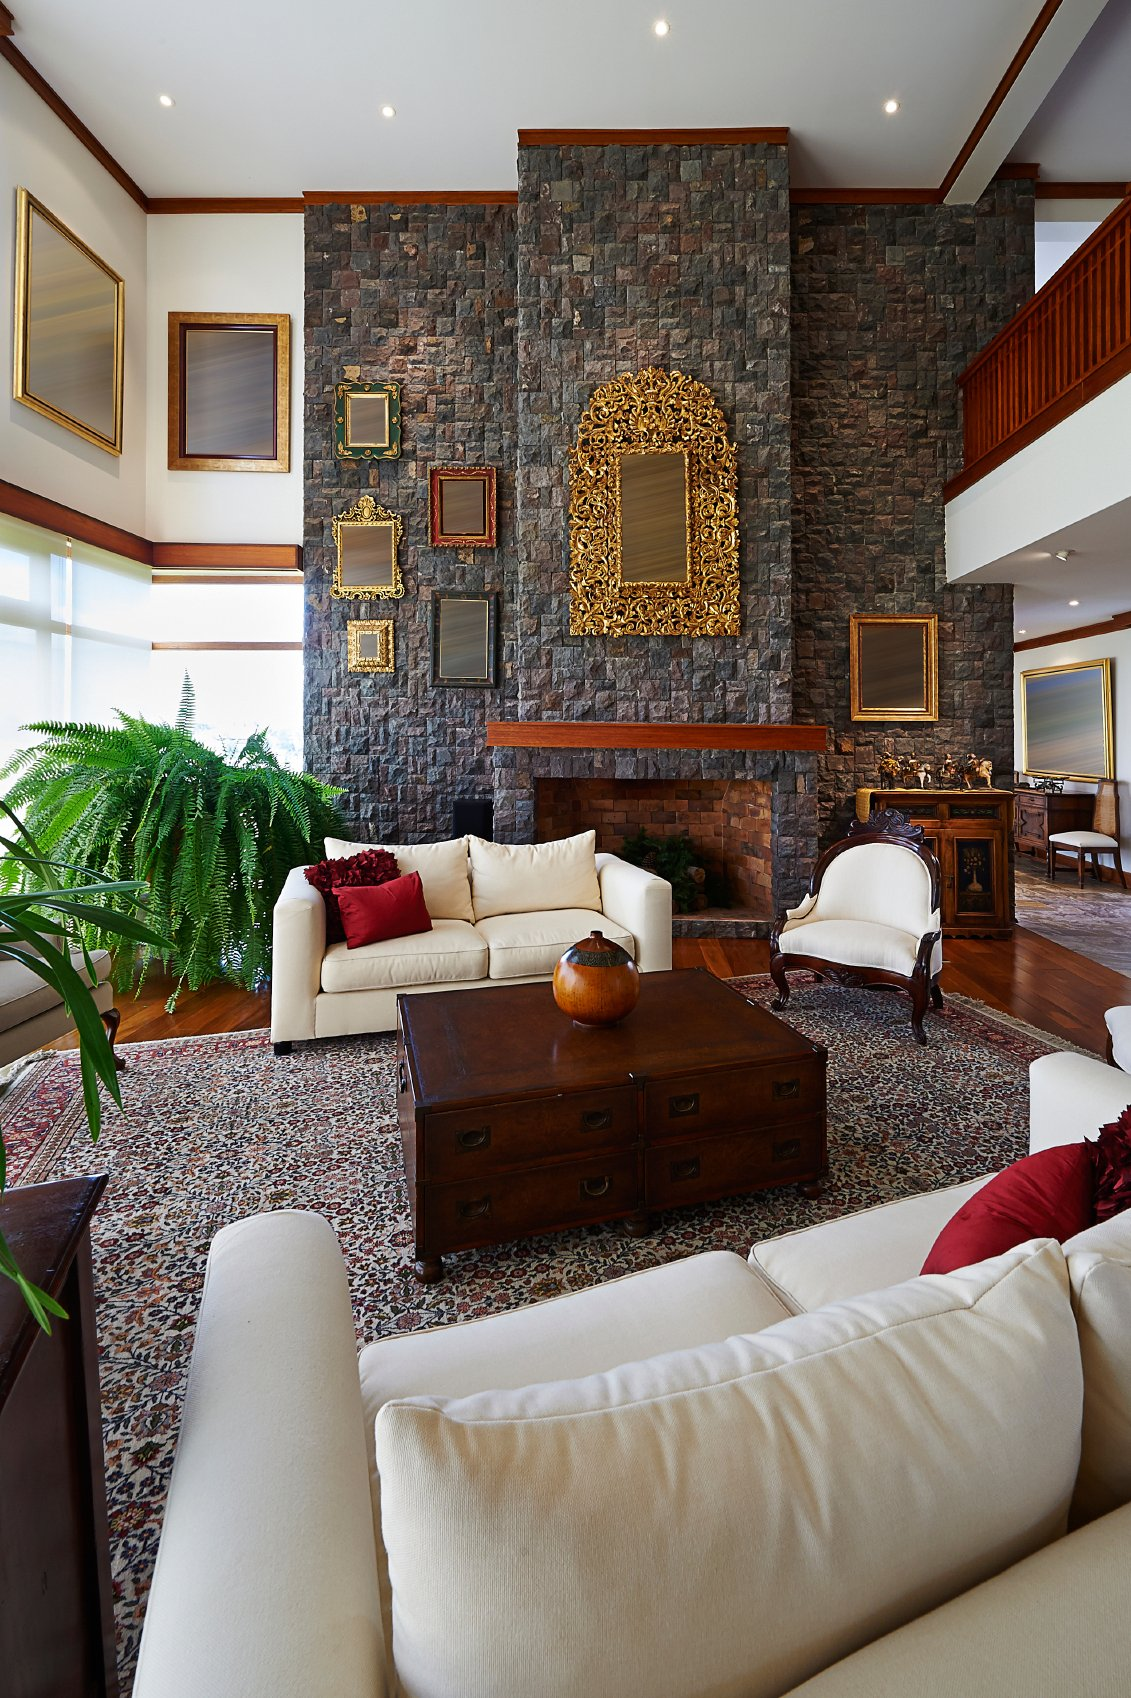 This luxurious room is dominated by massive stone fireplace wall, looming over a rich hardwood floor with large floral area rug and white and dark wood furniture. Gold details abound, framing paintings scattered throughout.